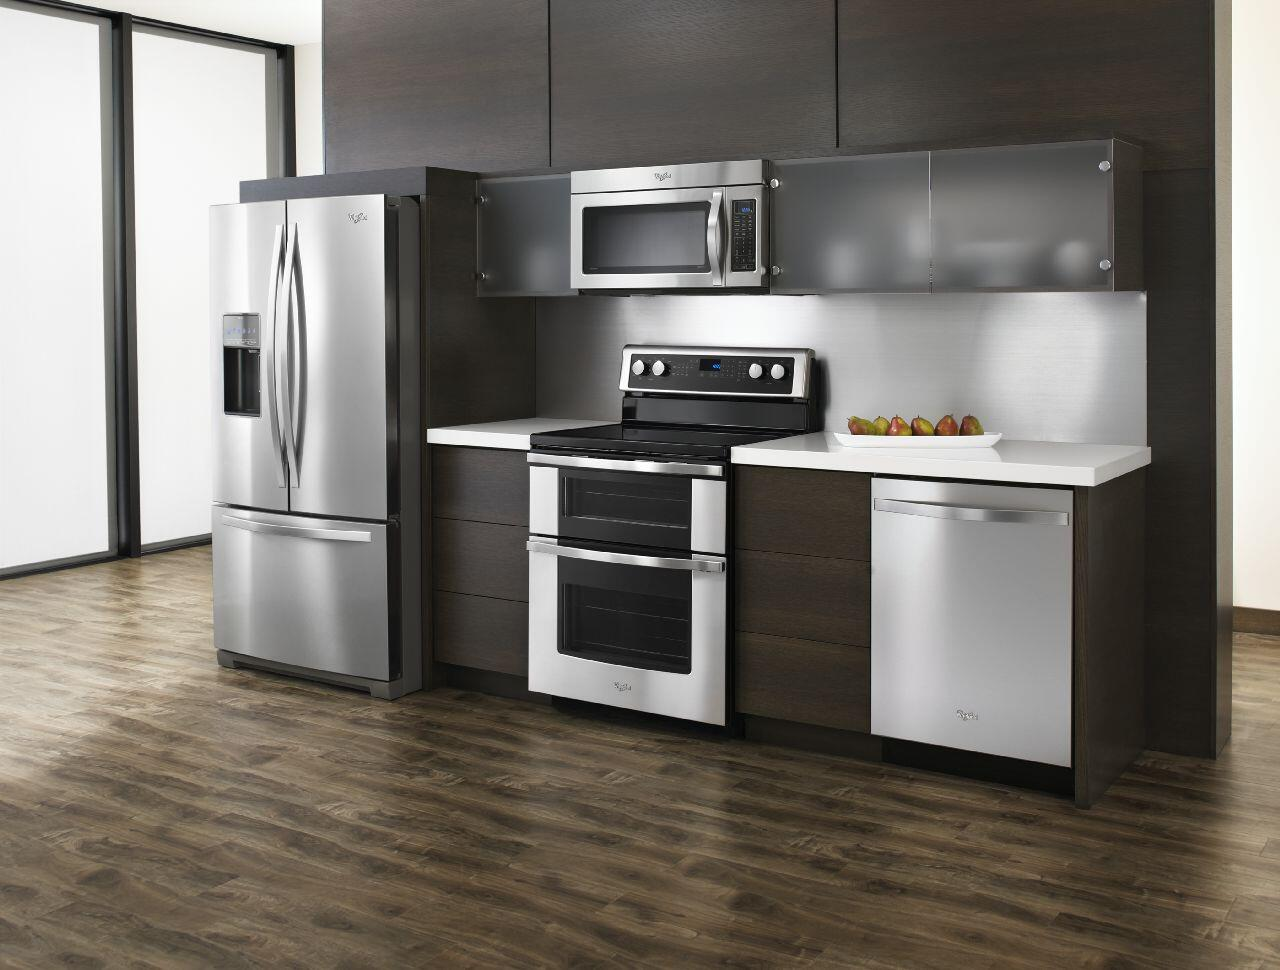 best place to buy kitchen appliances home depot flooring whirlpool wdt790saym 24 inch gold series built in fully ...